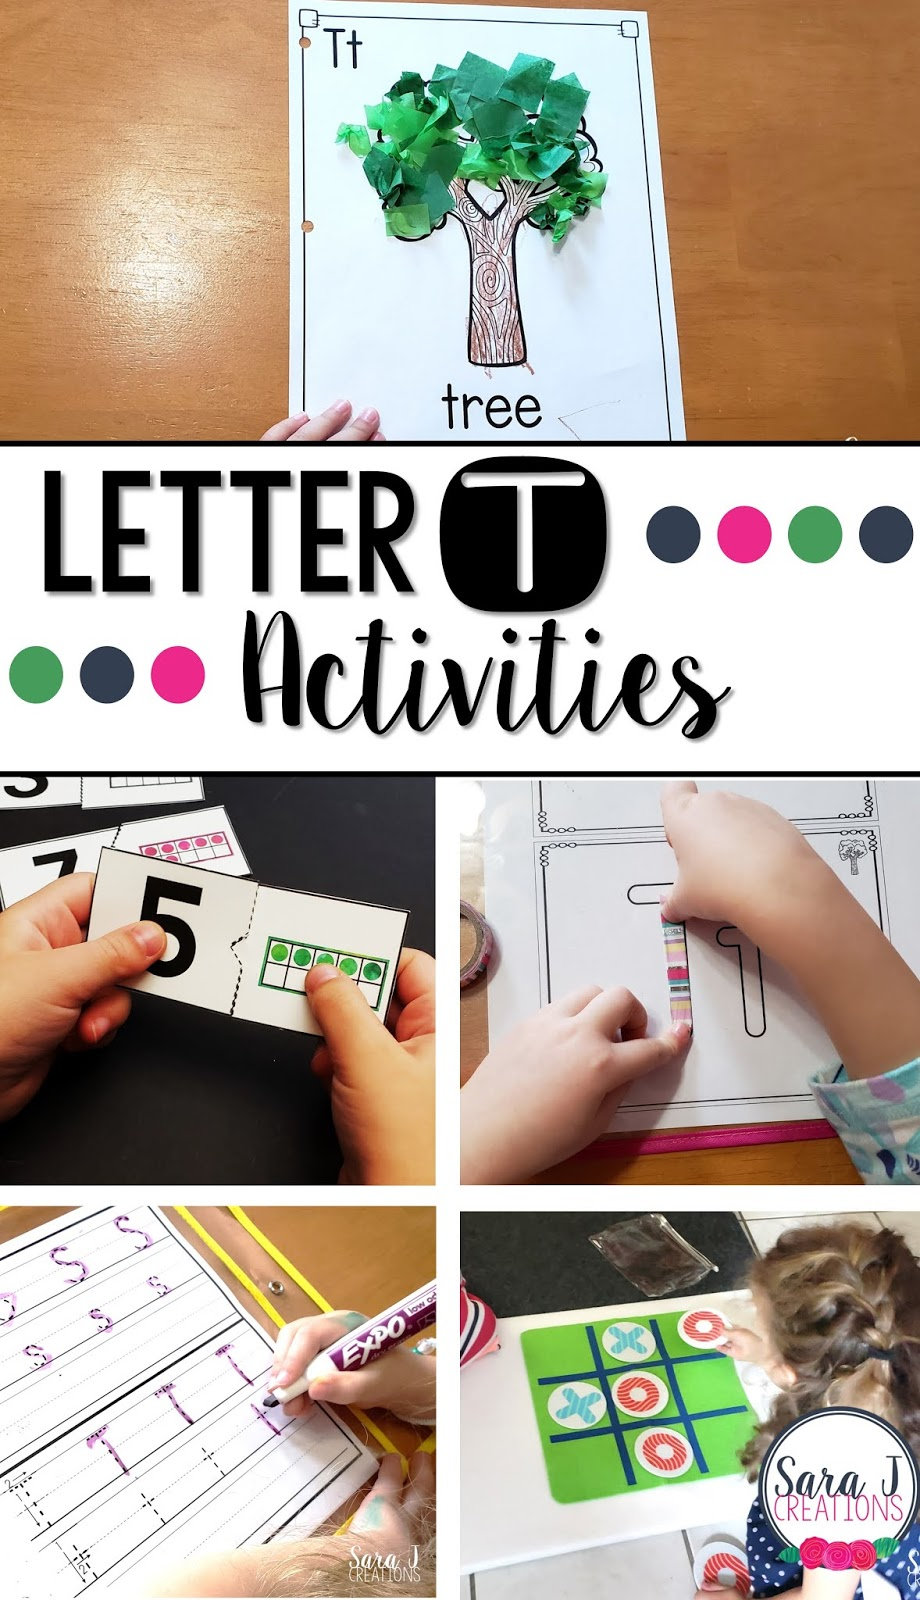 Join us as we practice the alphabet, specifically letter T, with fun activities for preschool aged kids. Art, crafts, fine motor, handwriting worksheets, books and more!